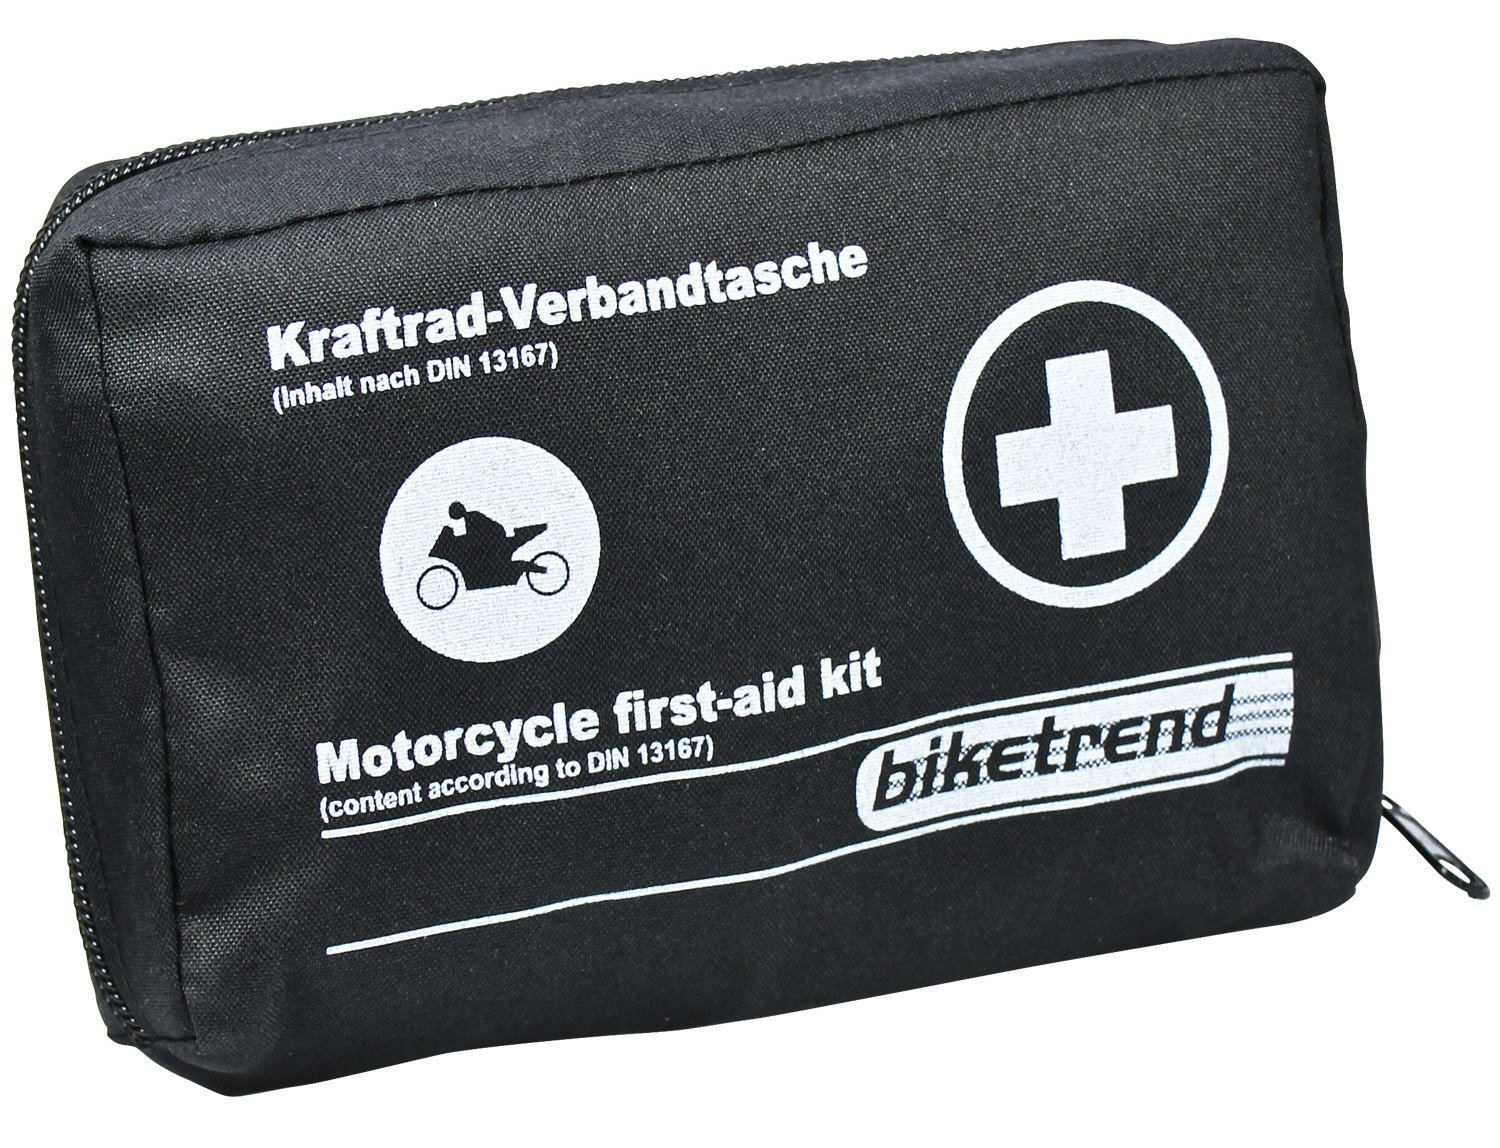 Cartrend Motor bike first aid bag, DIN 13167 7730050